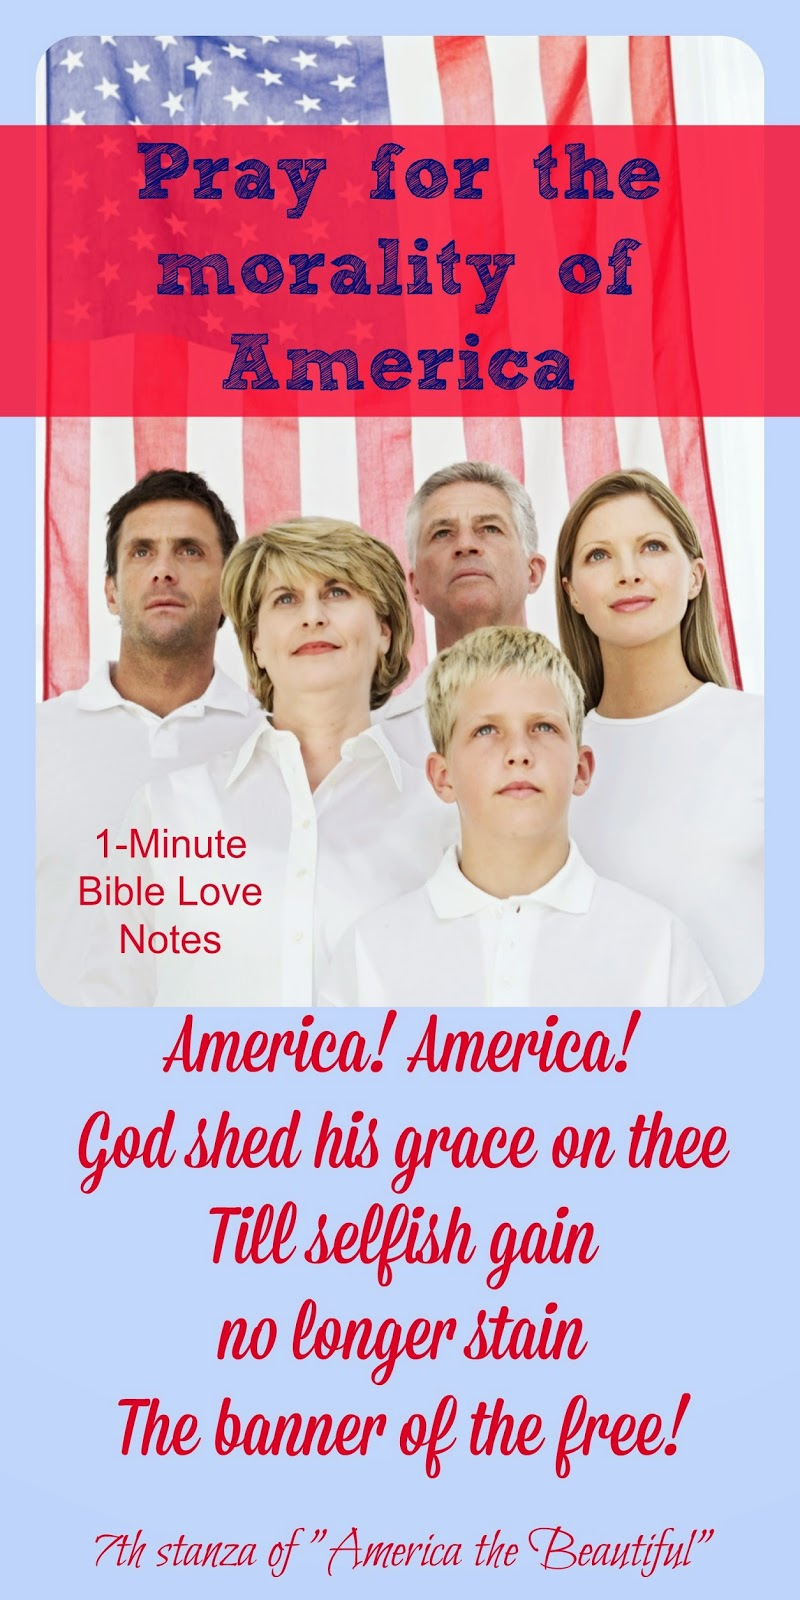 America more moral than Europe, moral values in America, God, Prayer